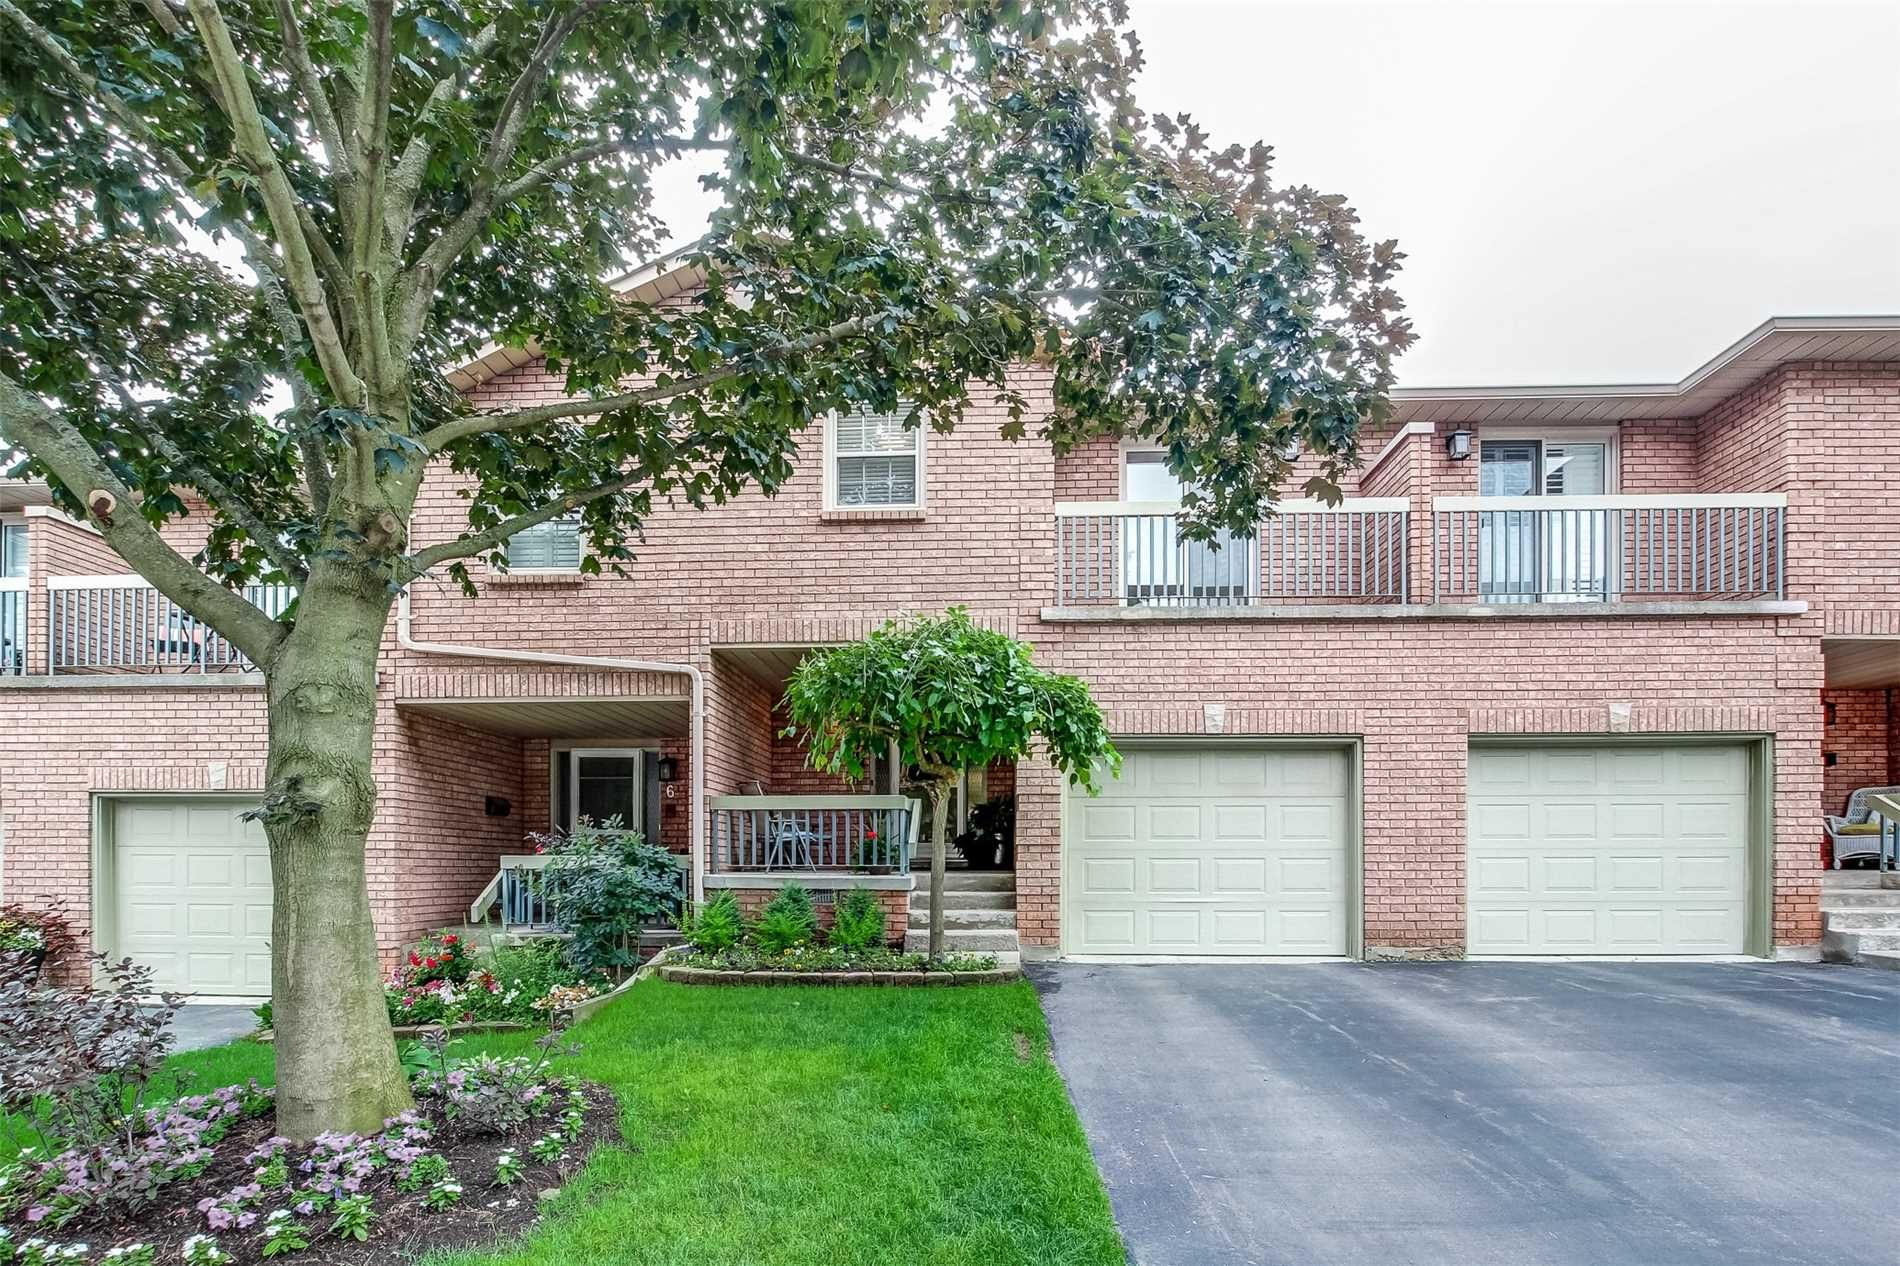 3125 Pinemeadow Dr. This condo townhouse at The Enclave North Townhomes is located in Brant Hills | Nelson, Burlington